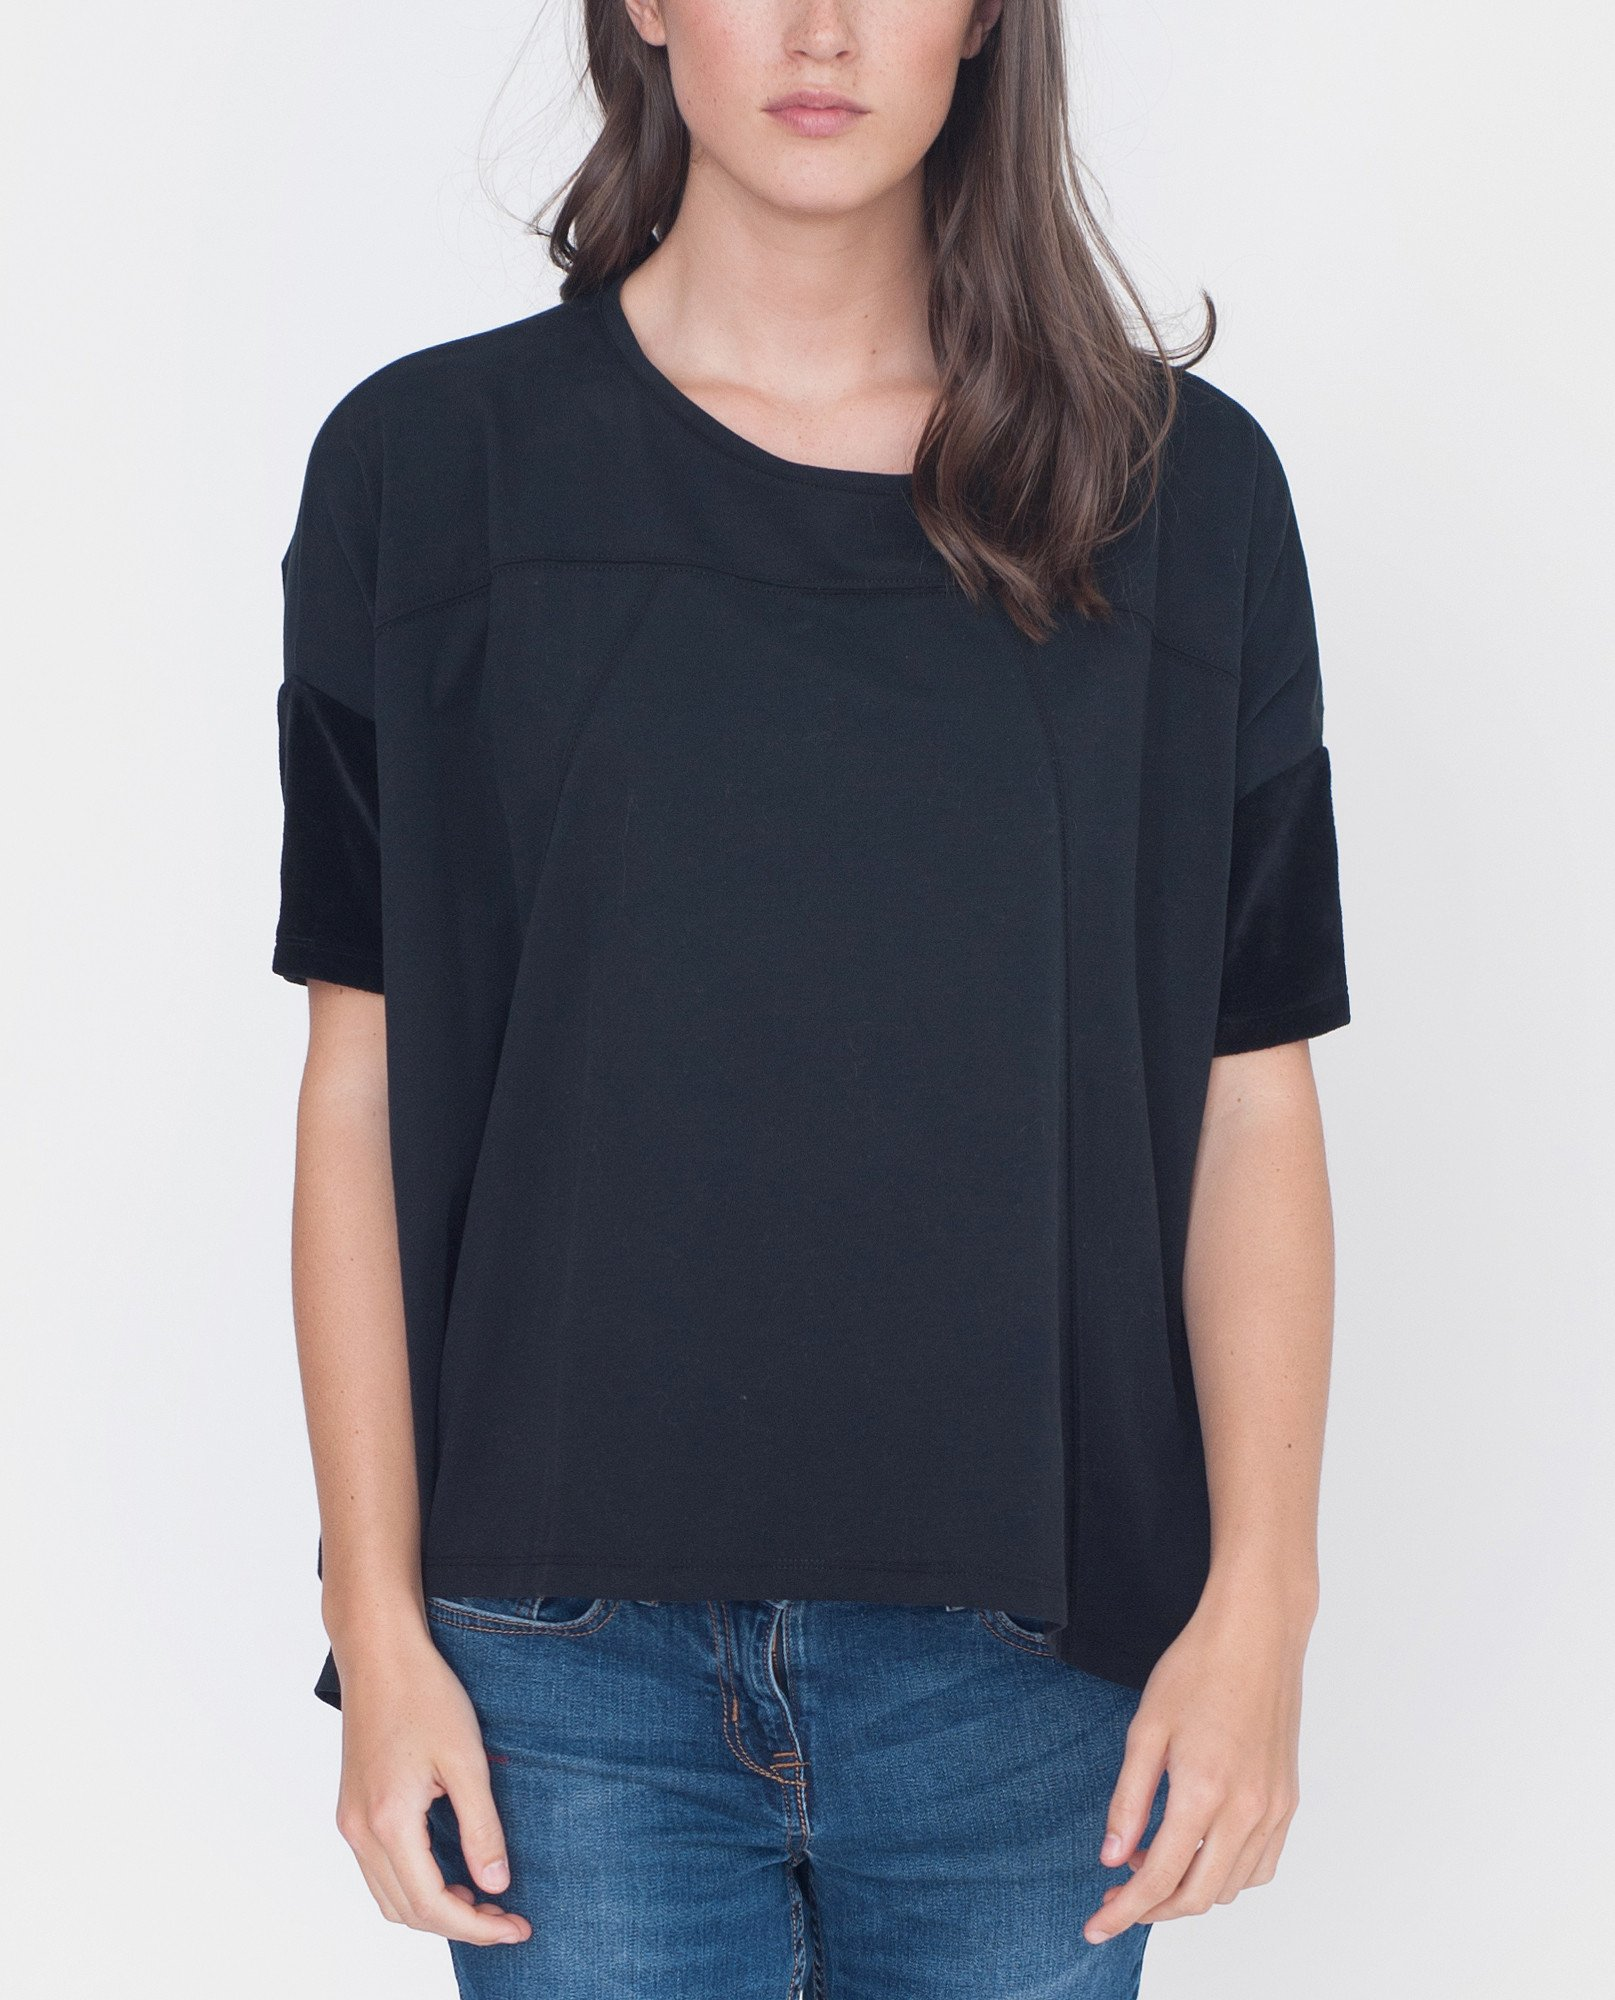 JESSIE Organic Cotton Top from Beaumont Organic